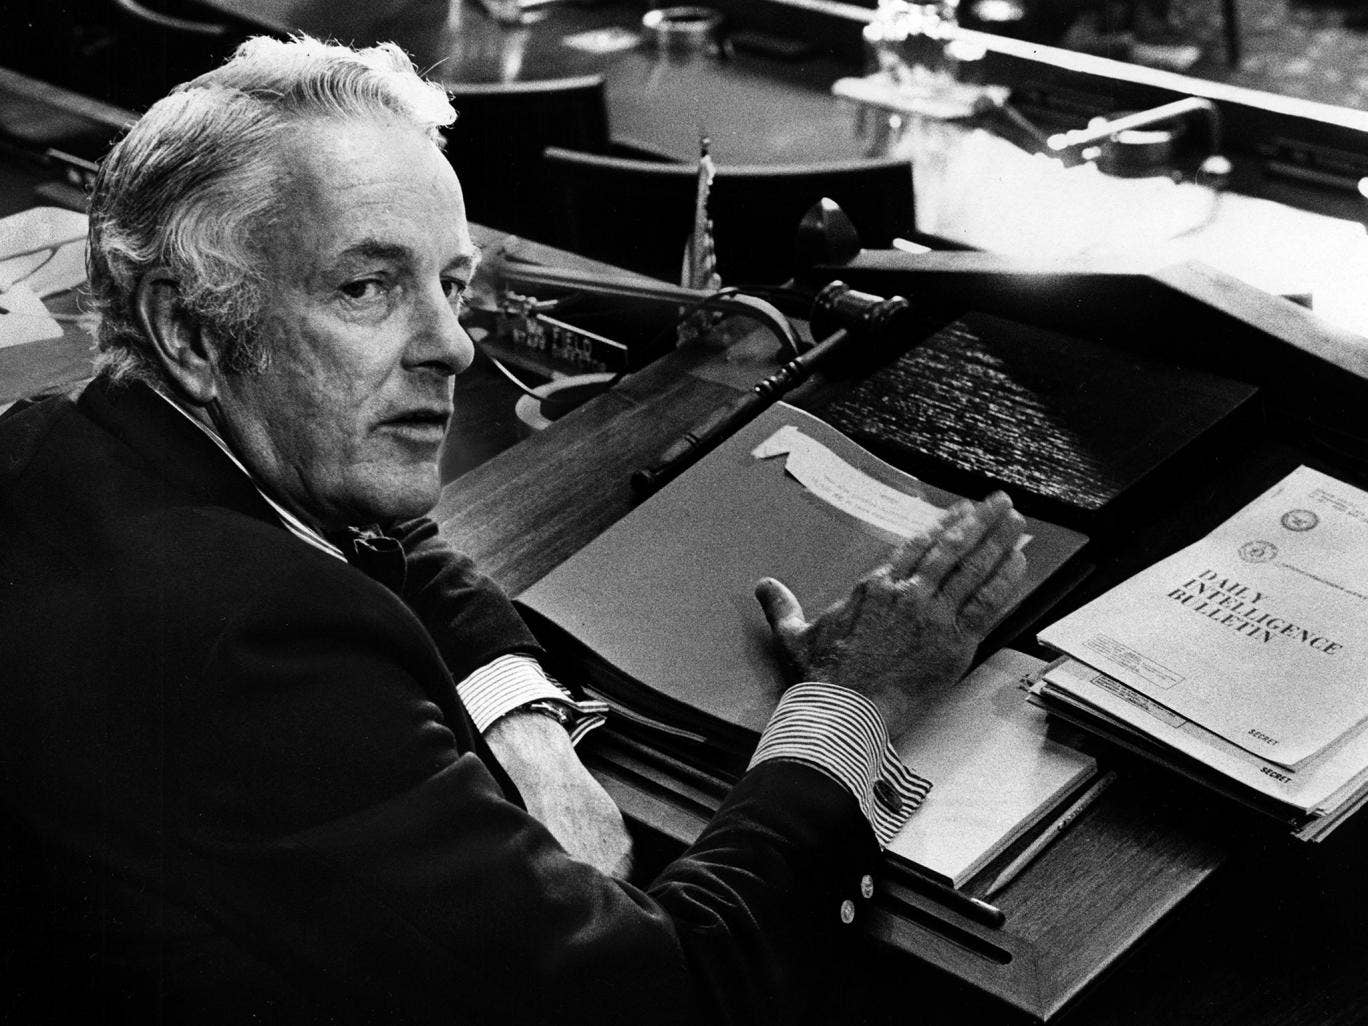 Pike in 1975: he was, said 'Time', 'the model of a properly pugnacious public servant'